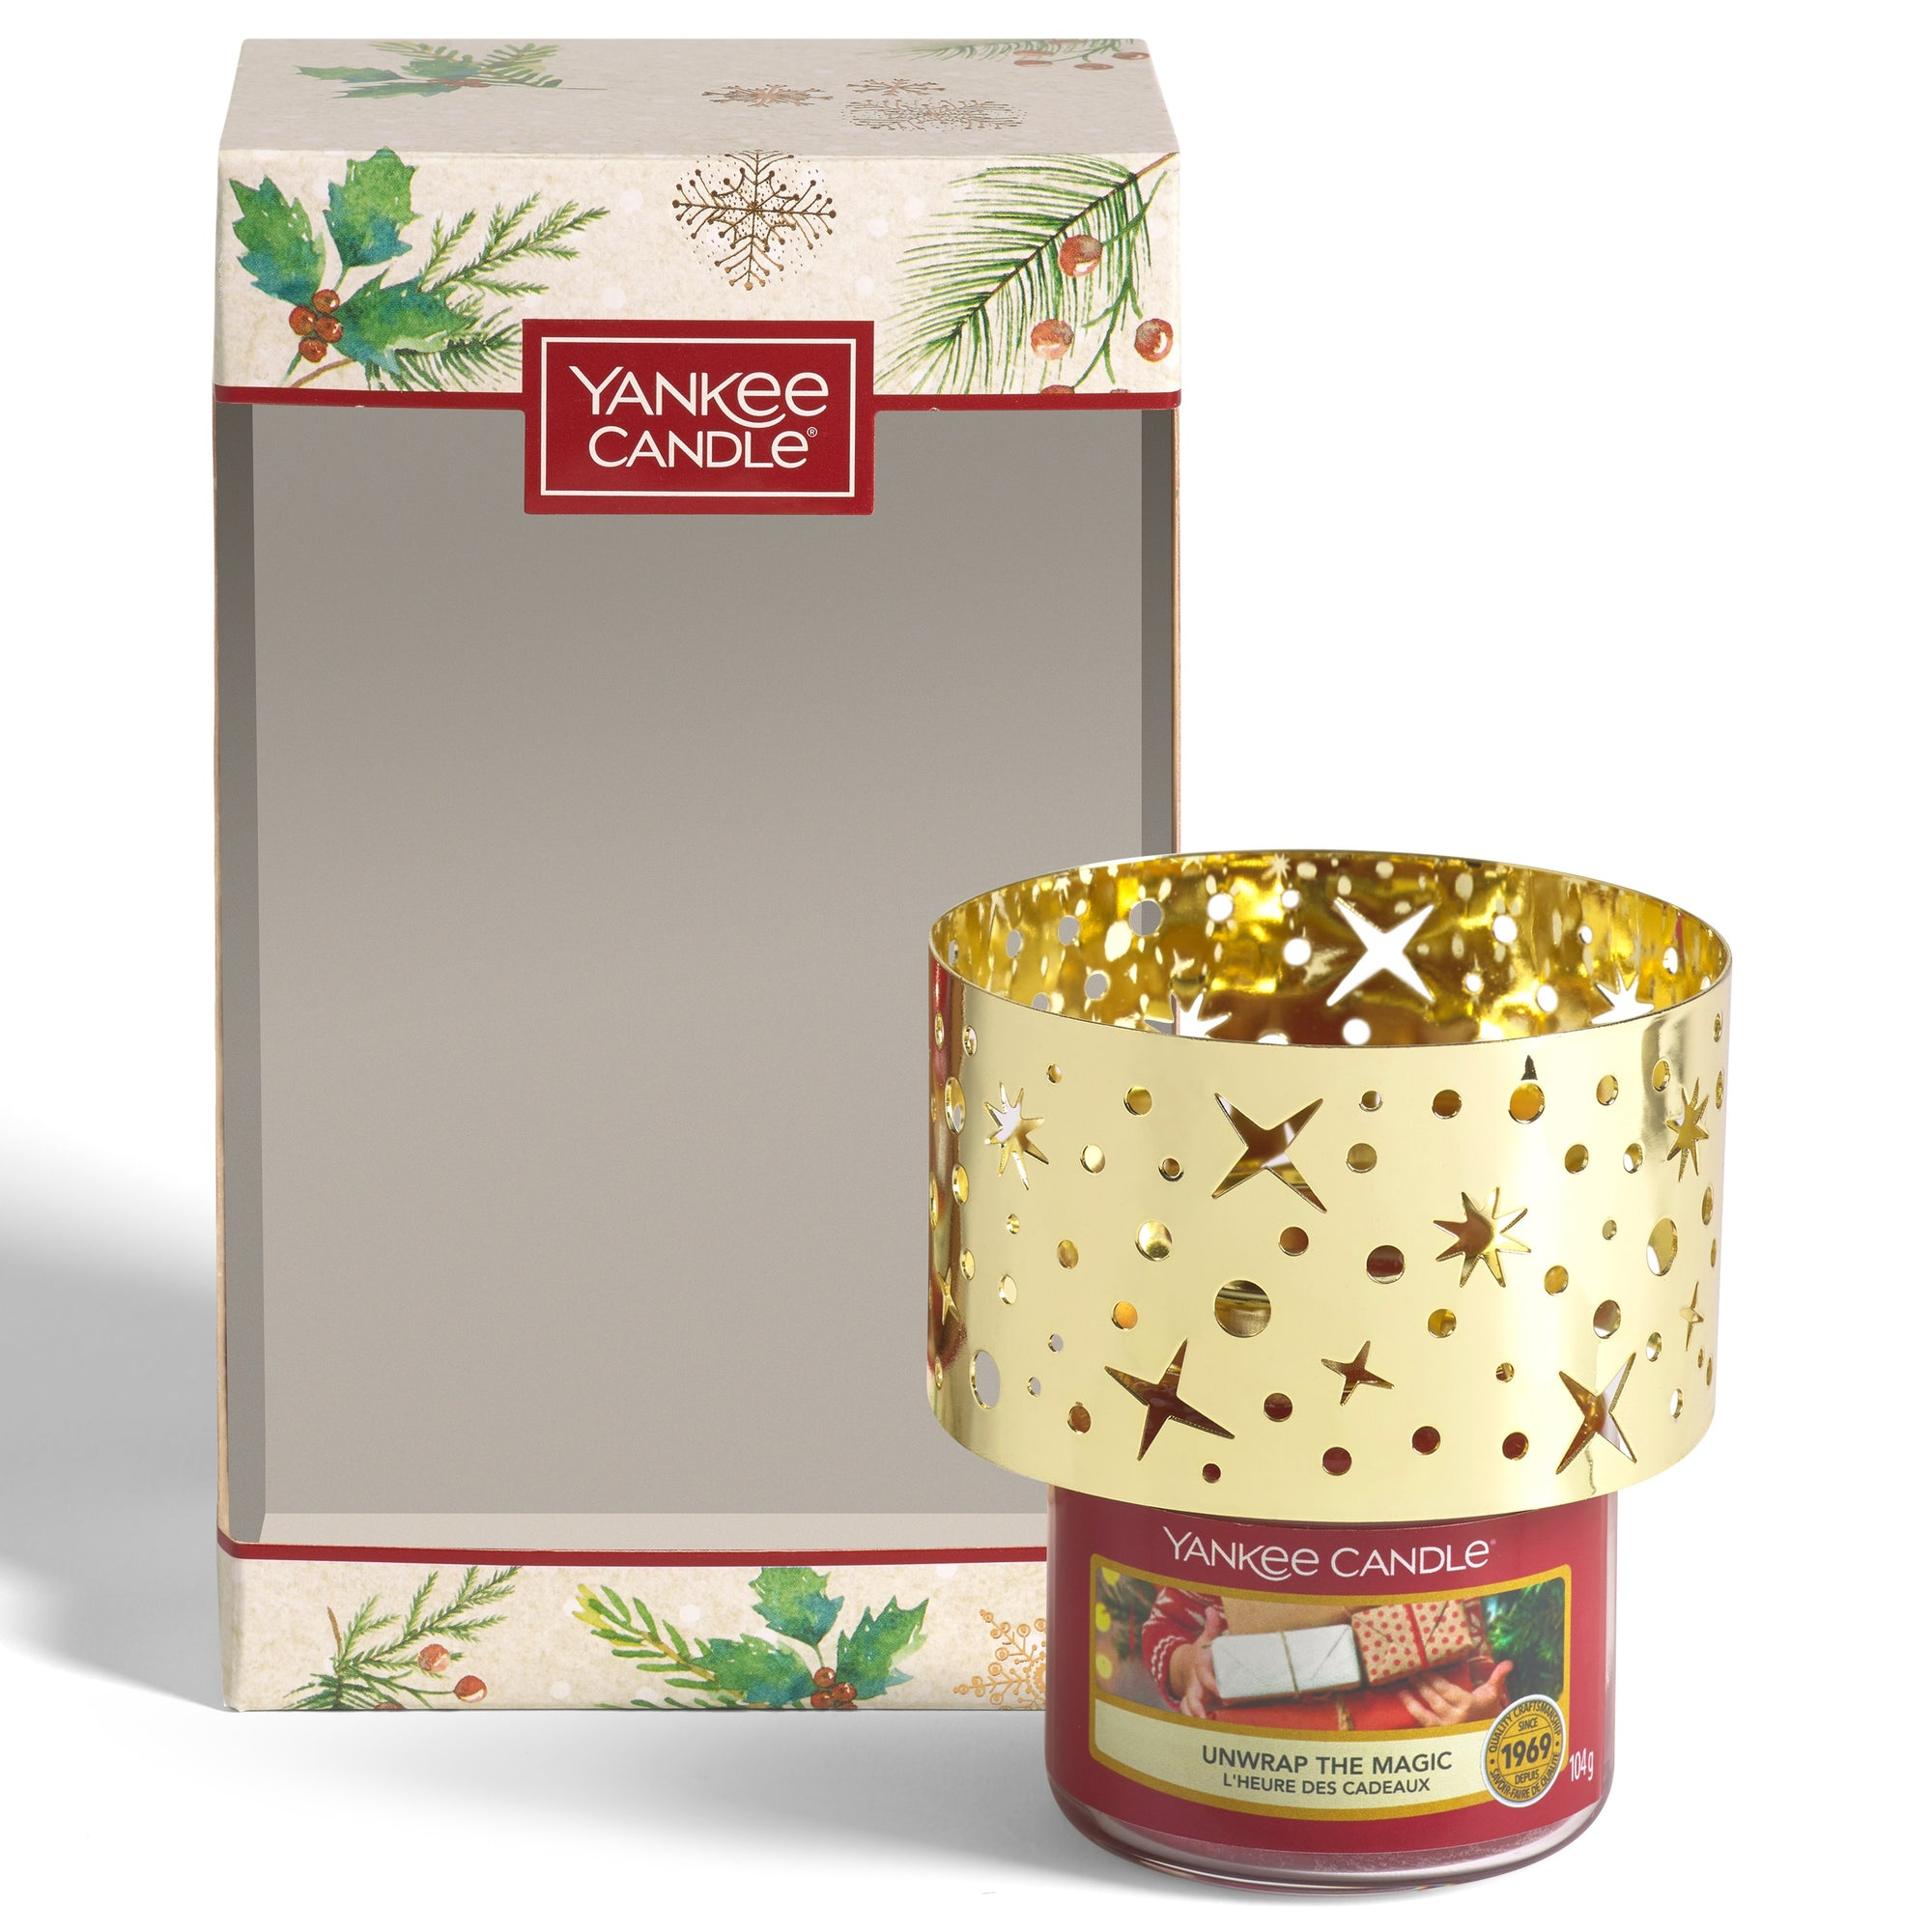 Yankee Candle - Small Jar Candle and Shade Gift Set